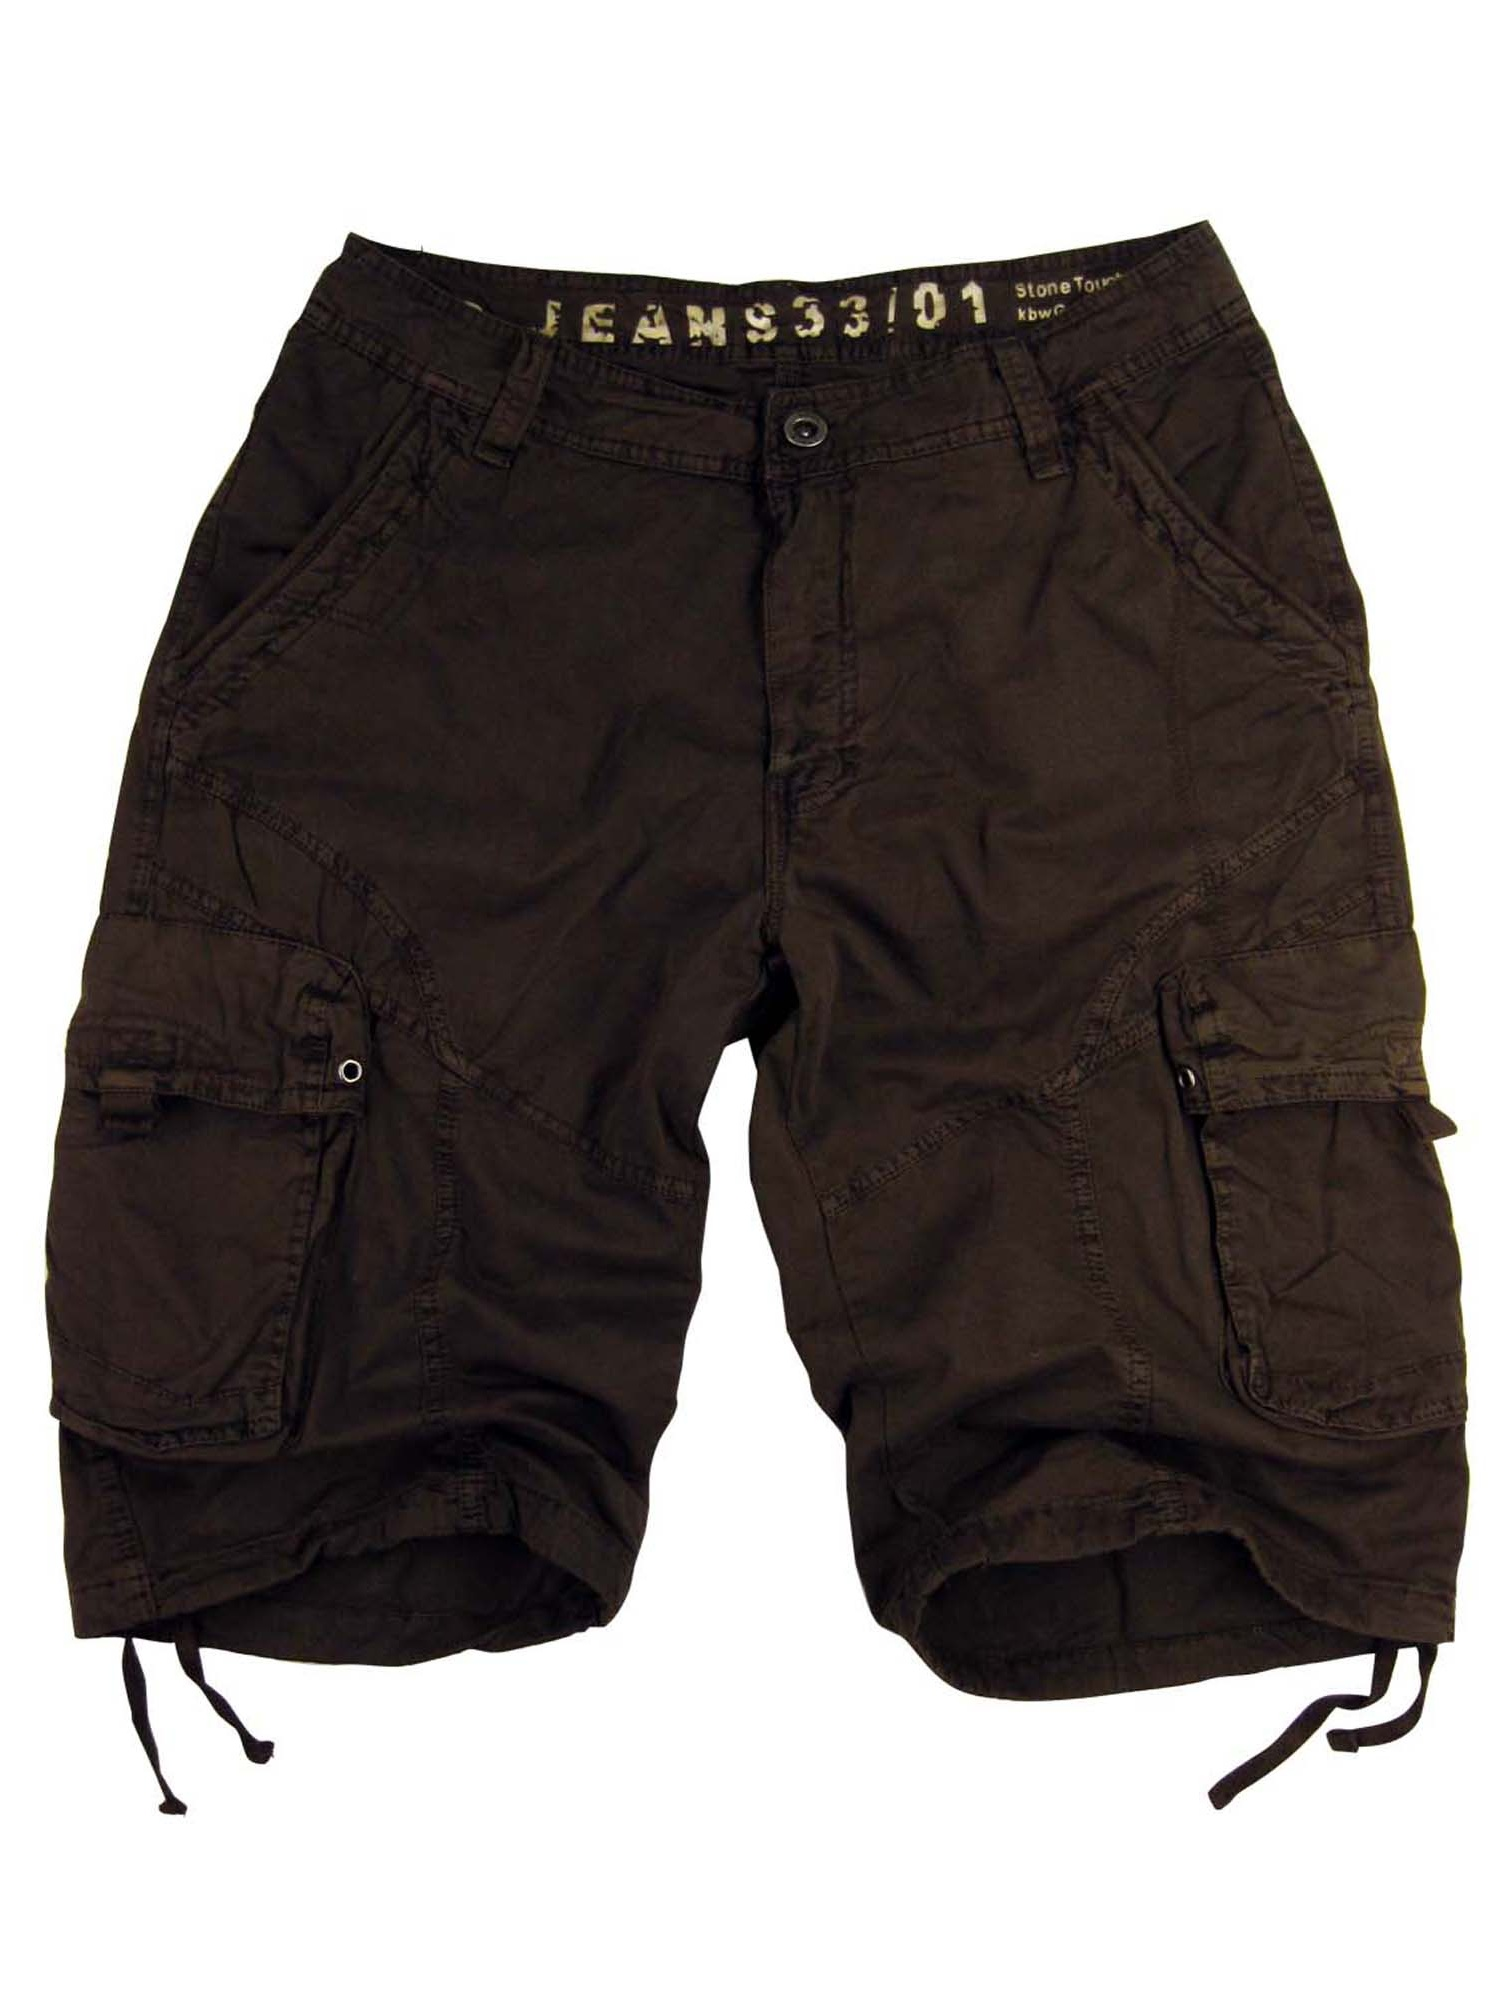 Mens Military-style Cargo Pocket Shorts Black Color #27S-BLK sizes:30